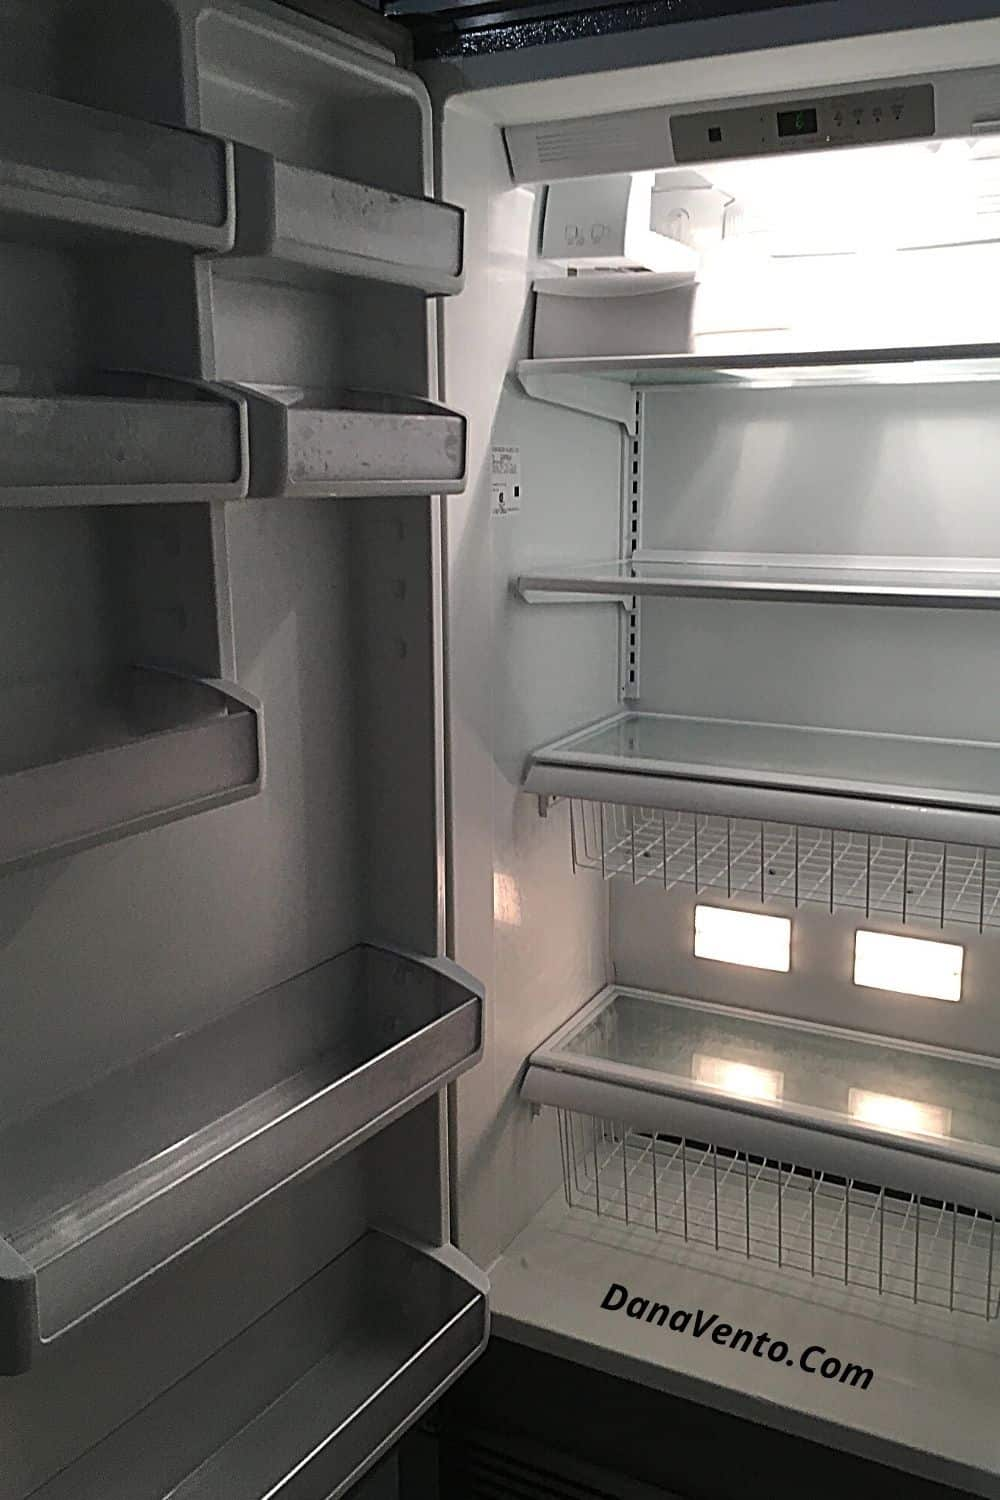 summer travel stories empty Fridge in a vacation rental